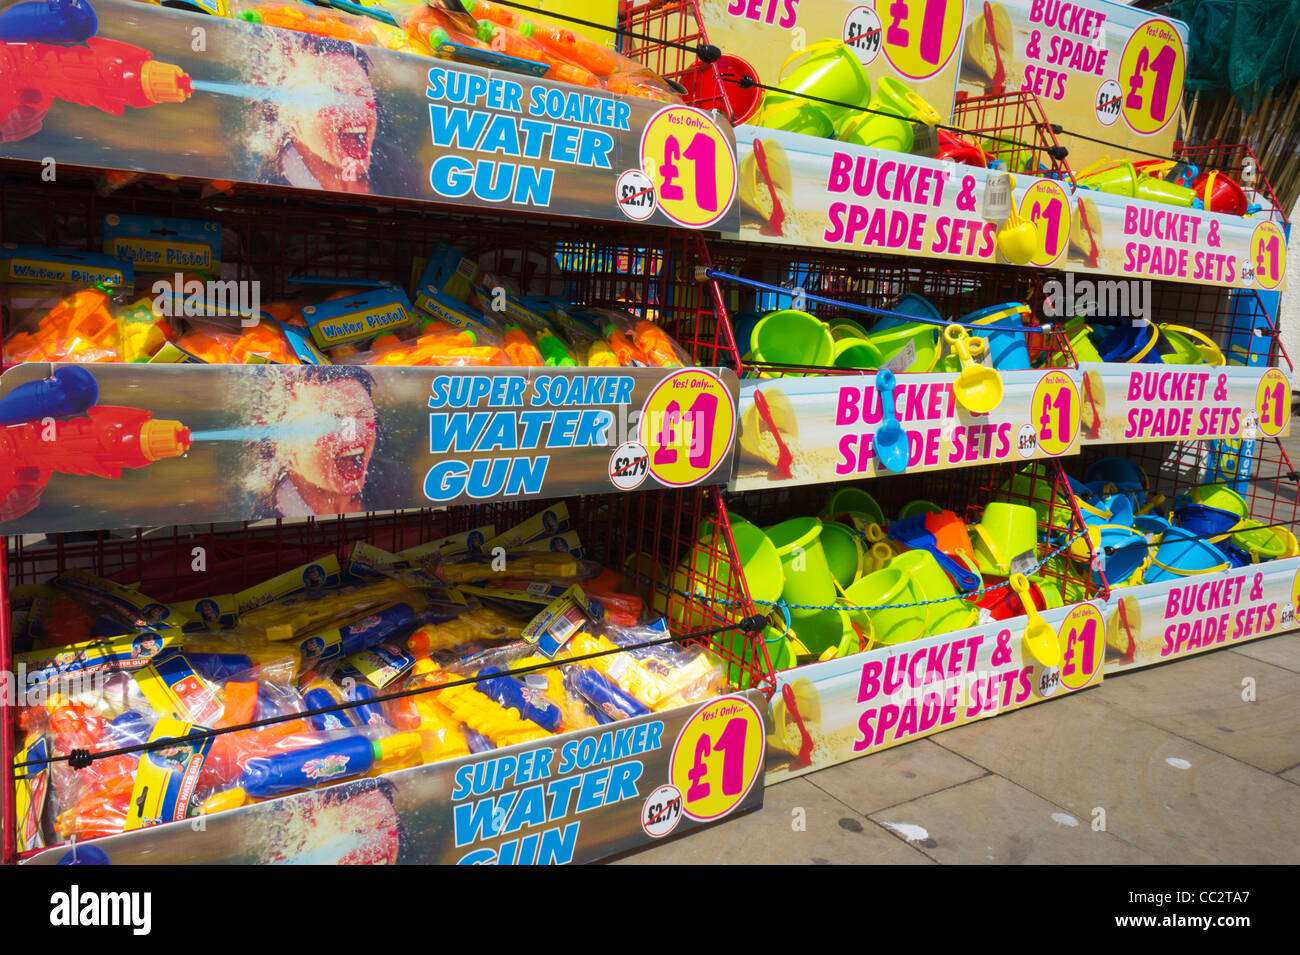 Seaside shop selling water gun and Bucket and Spade sets Scarborough England - Stock Image